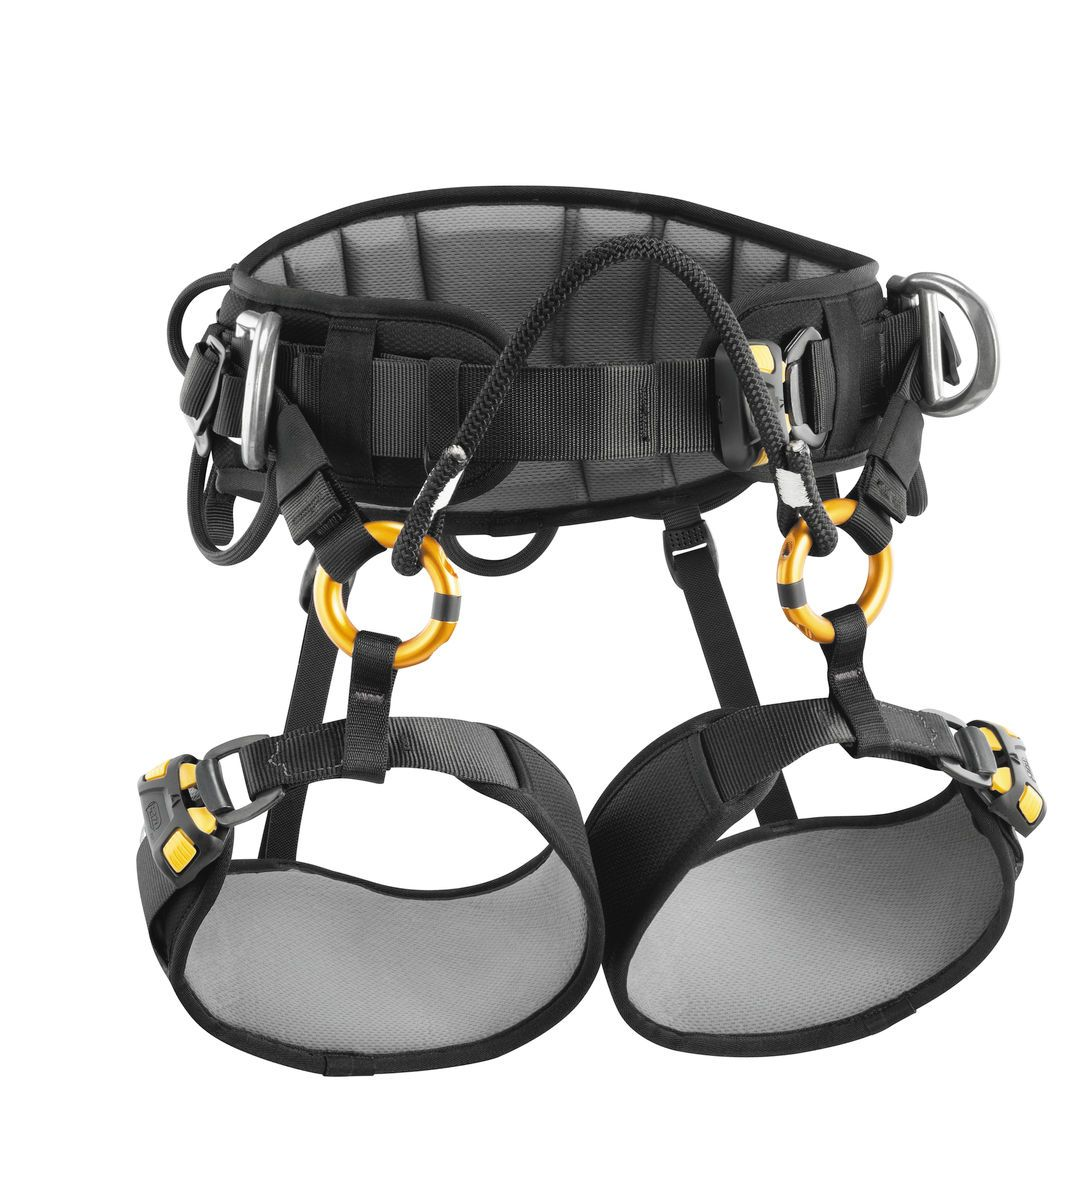 Pin by Simon Lewis on Wishlist Climbing harness